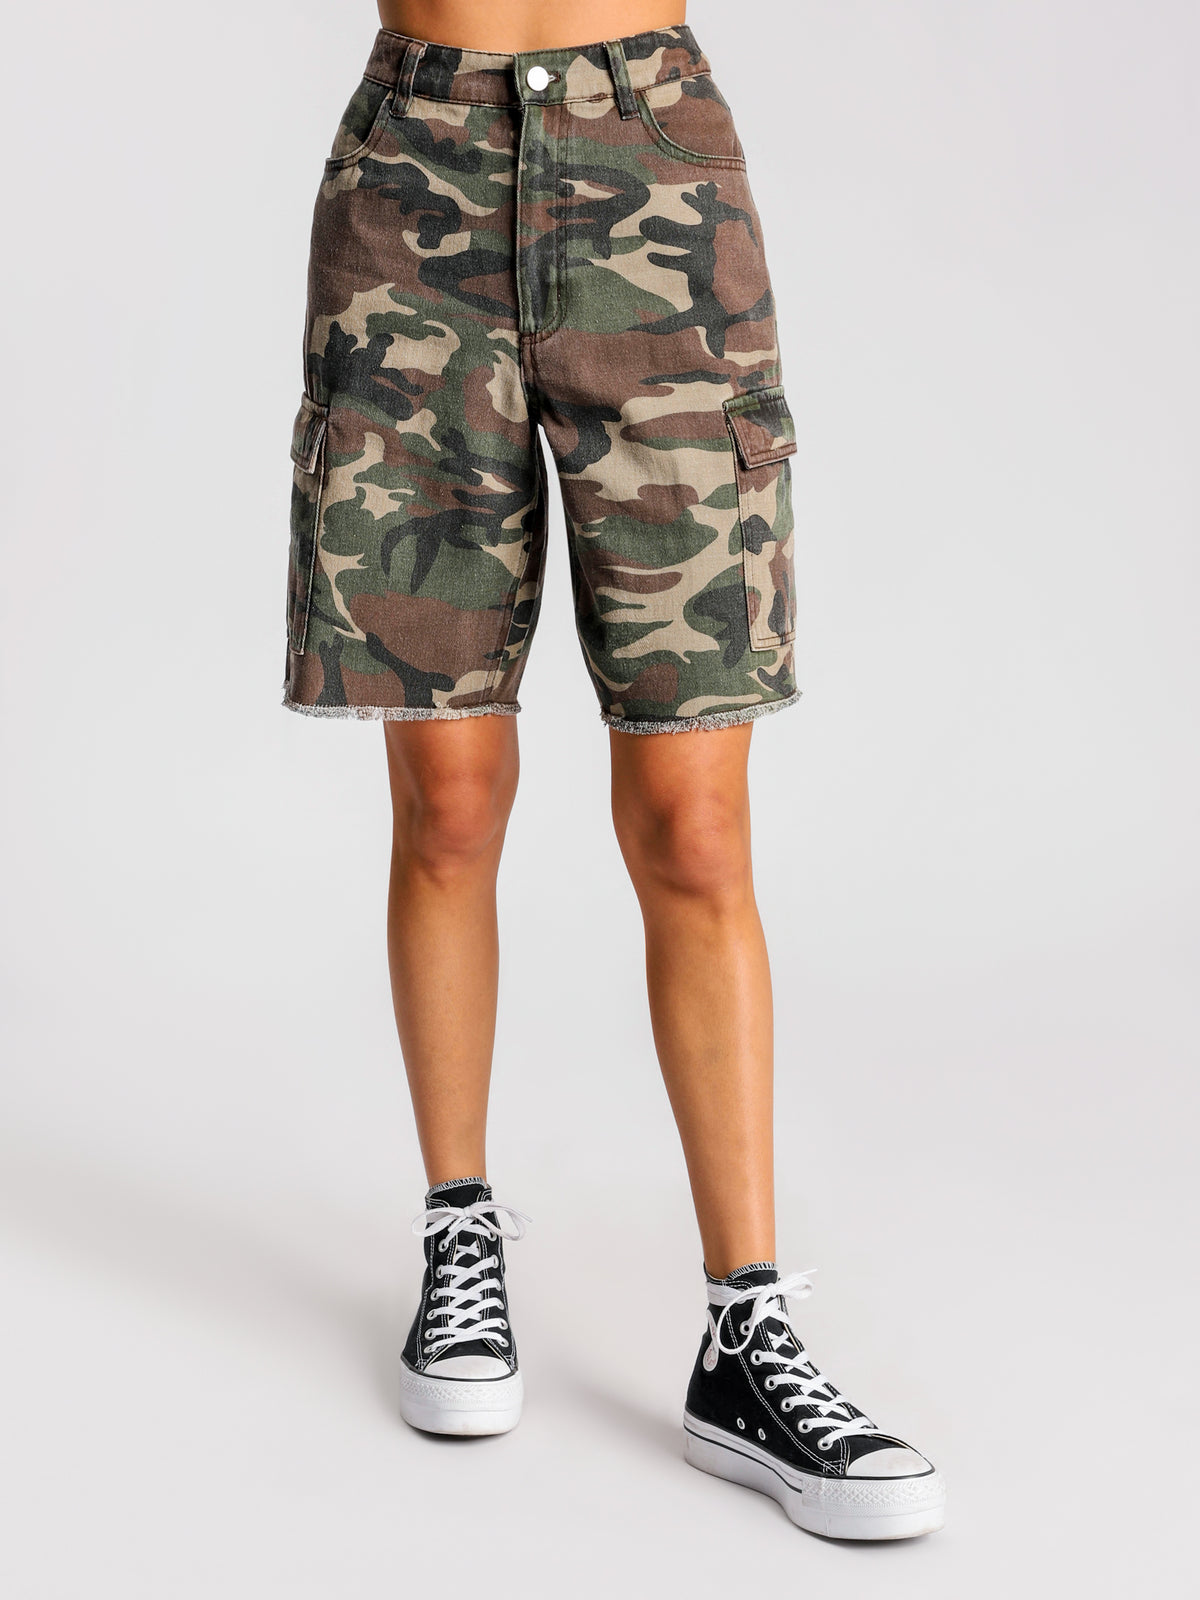 Artillery Shorts in Camouflage